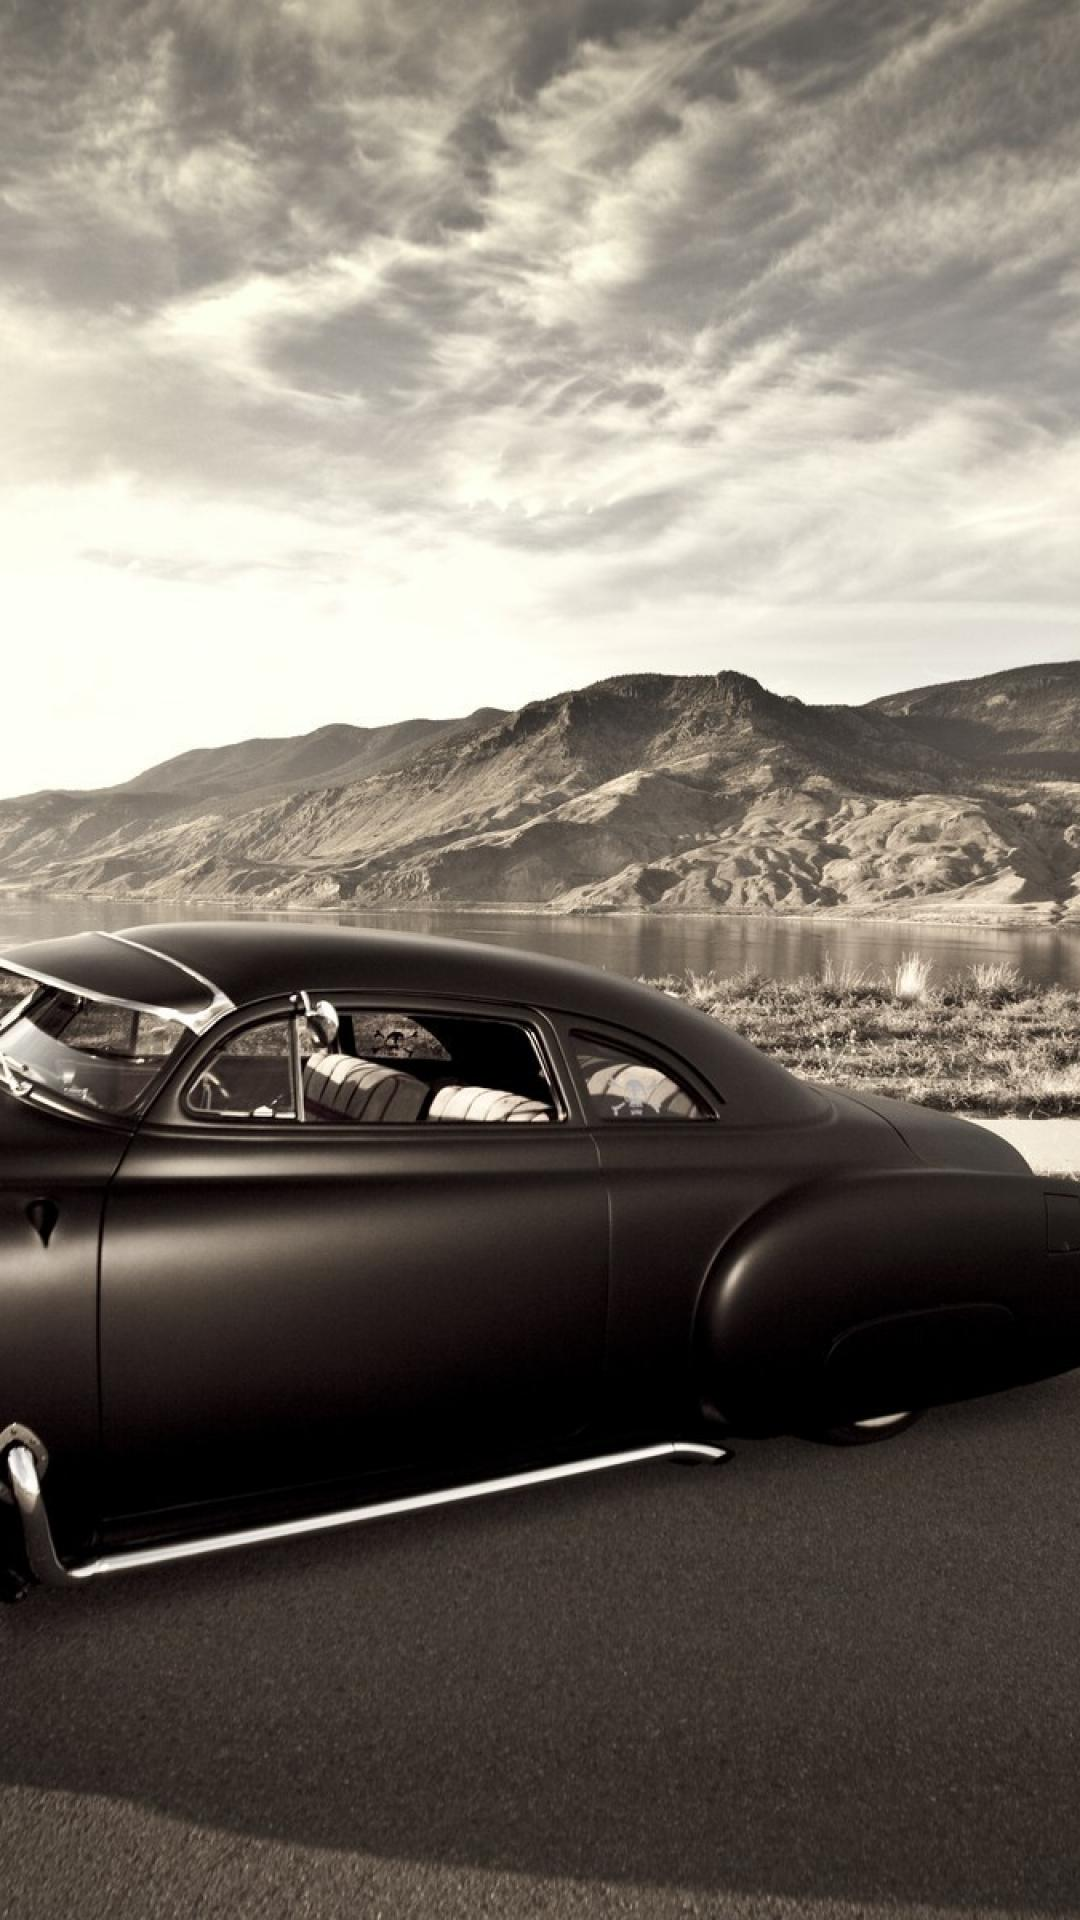 16 Best Free Old Car Phone Wallpapers Wallpaperaccess